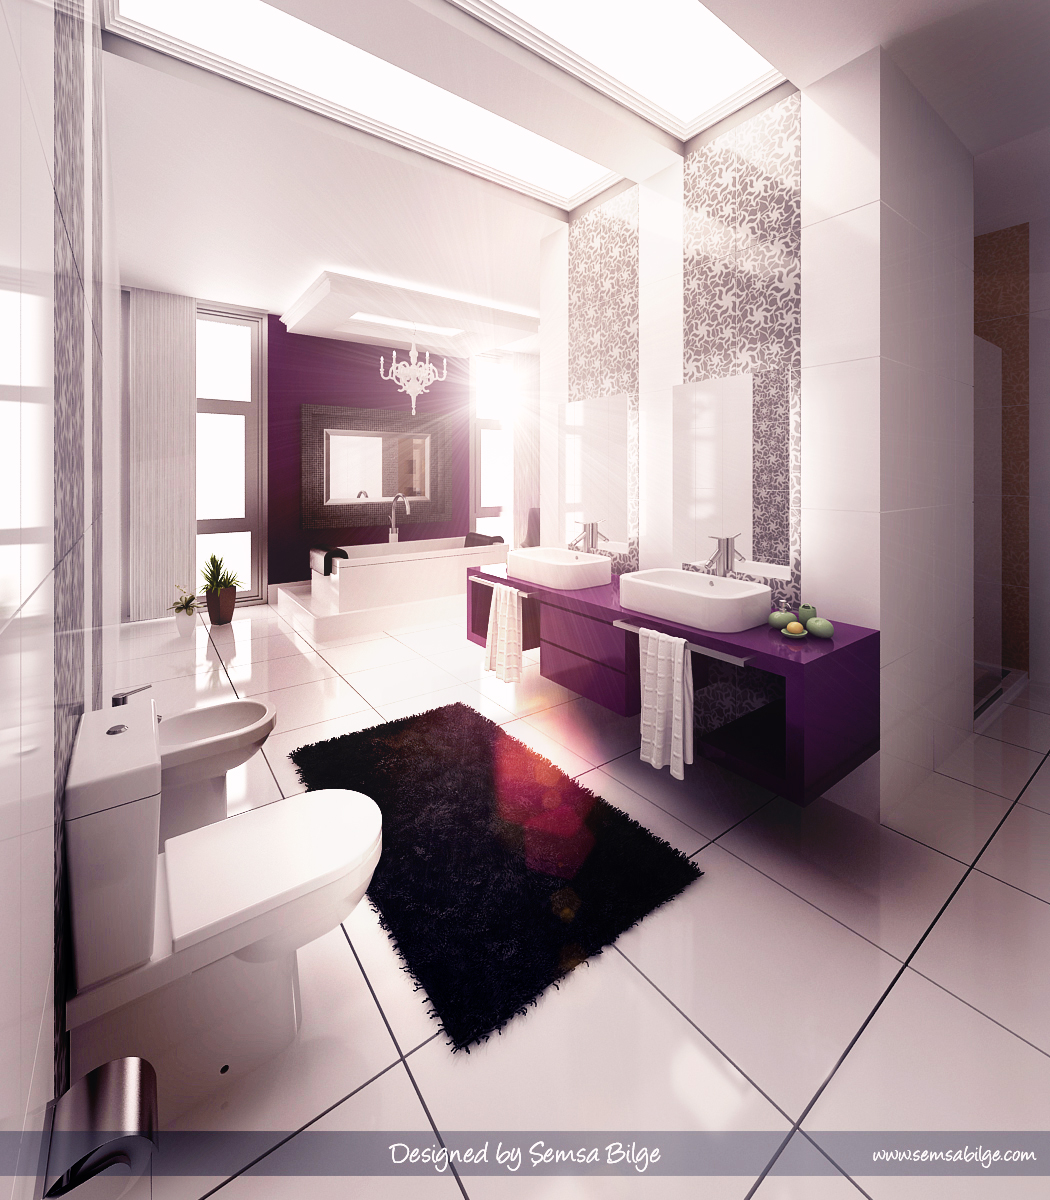 Inspiring bathroom designs for the soul for Designer bathroom designs